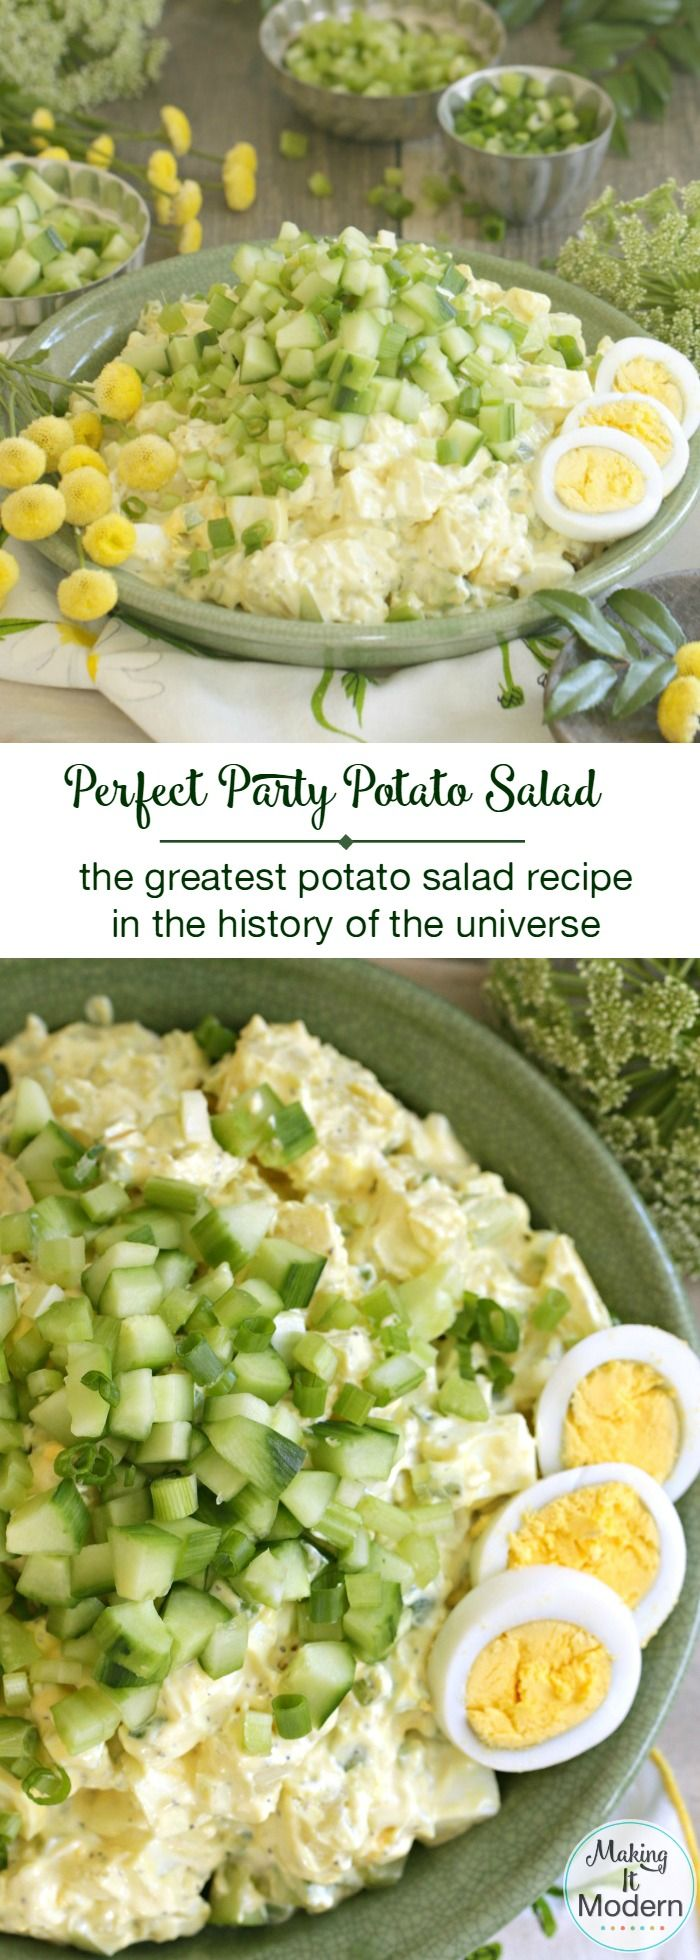 This Perfect Party Potato Salad recipe is hands down the greatest potato salad recipe ever! Click through for the recipe and fun how-to video.